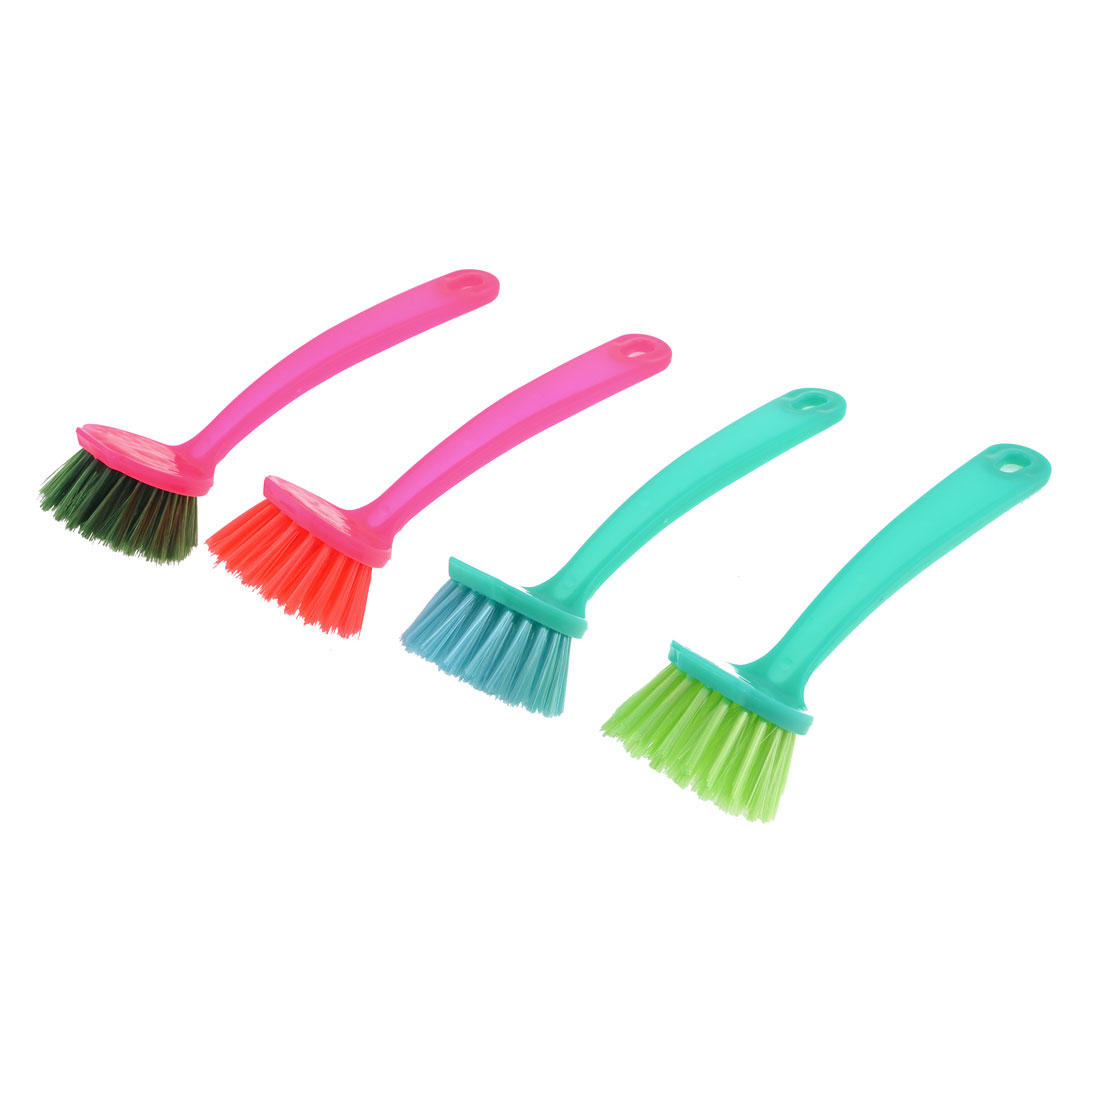 Plastic Handle Round Bristle Head Kitchen Pot Cleaning Scrubbing Brush